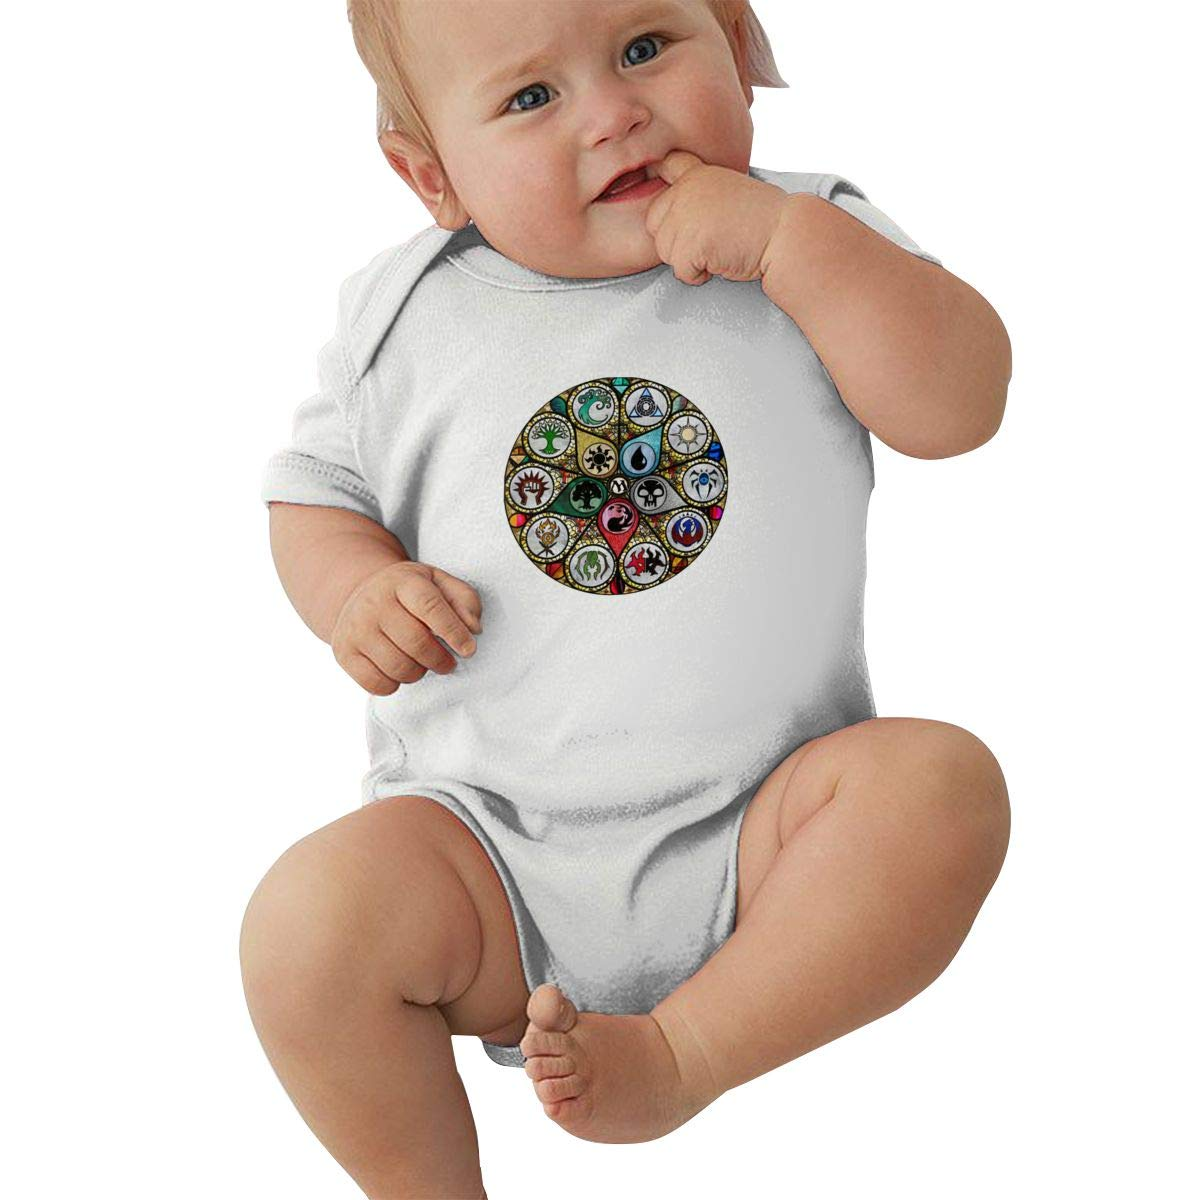 Dfenere MTG Stained Glass Graphic Newborn Baby Short Sleeve Bodysuit Romper Infant Summer Clothing Black